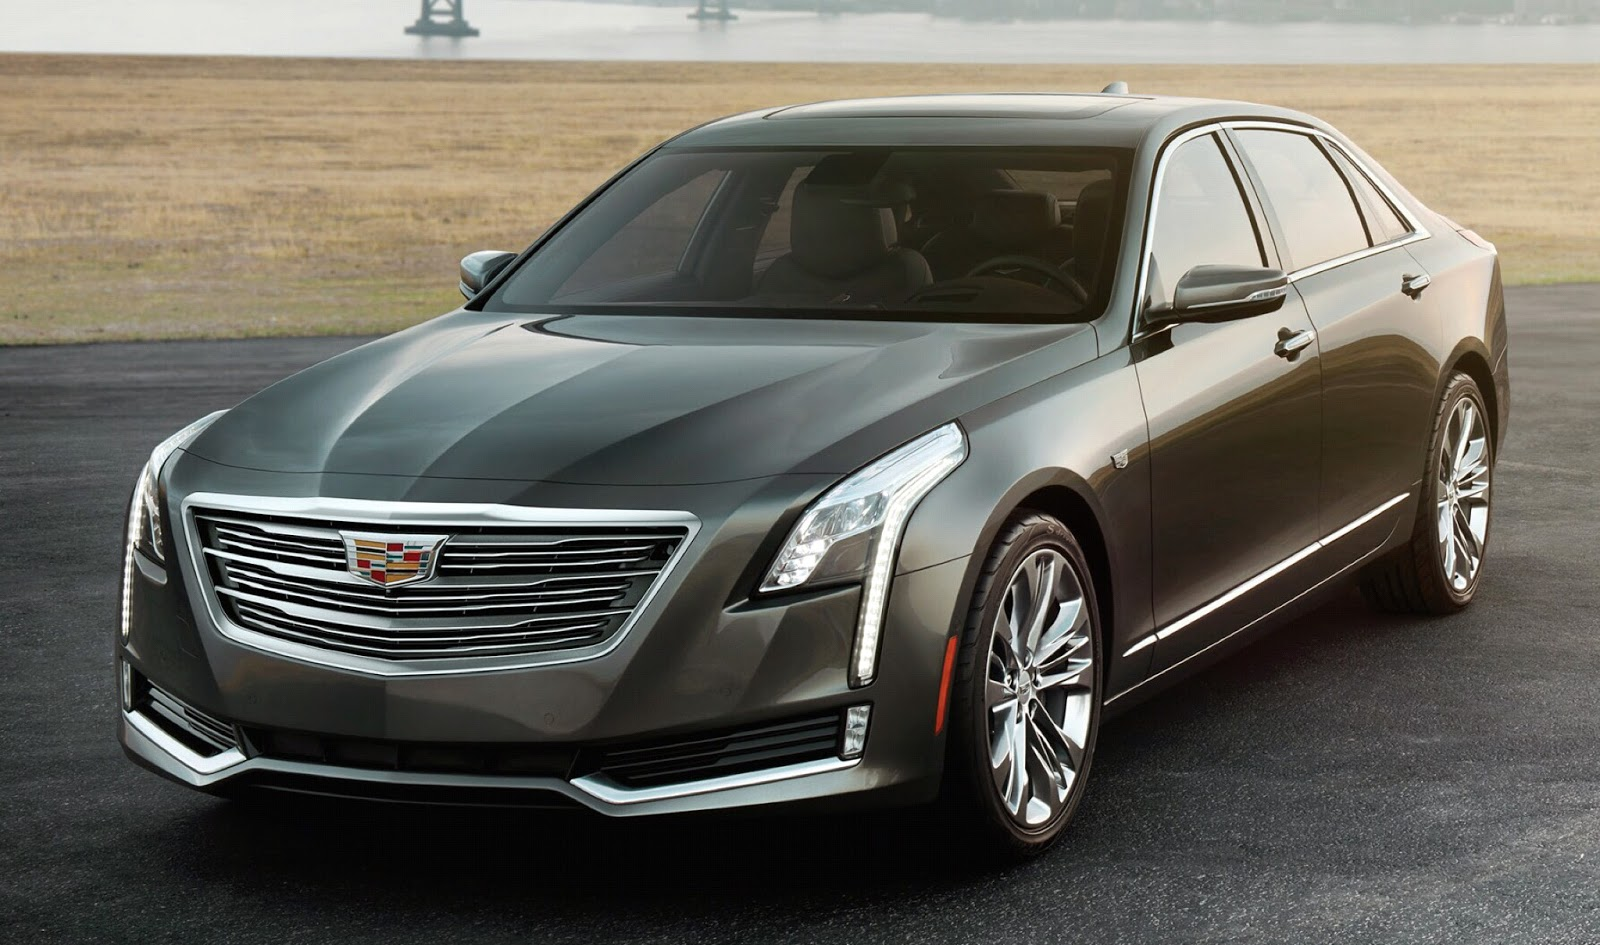 2016 cadillac ct6 leaked ahead of nyias debut autoevolution. Black Bedroom Furniture Sets. Home Design Ideas